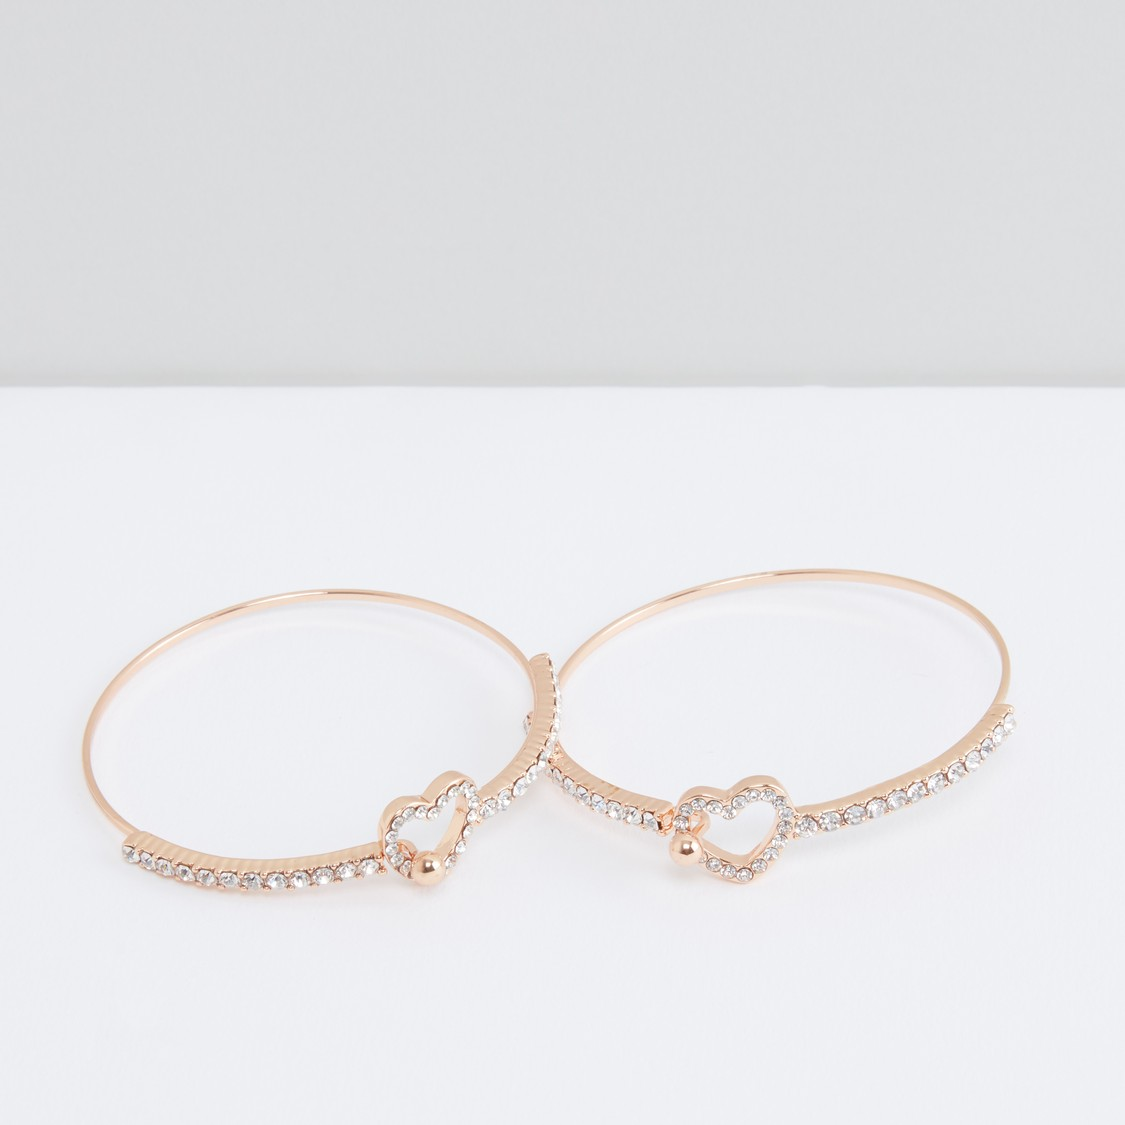 Studded Bangle with Heart Applique - Set of 2